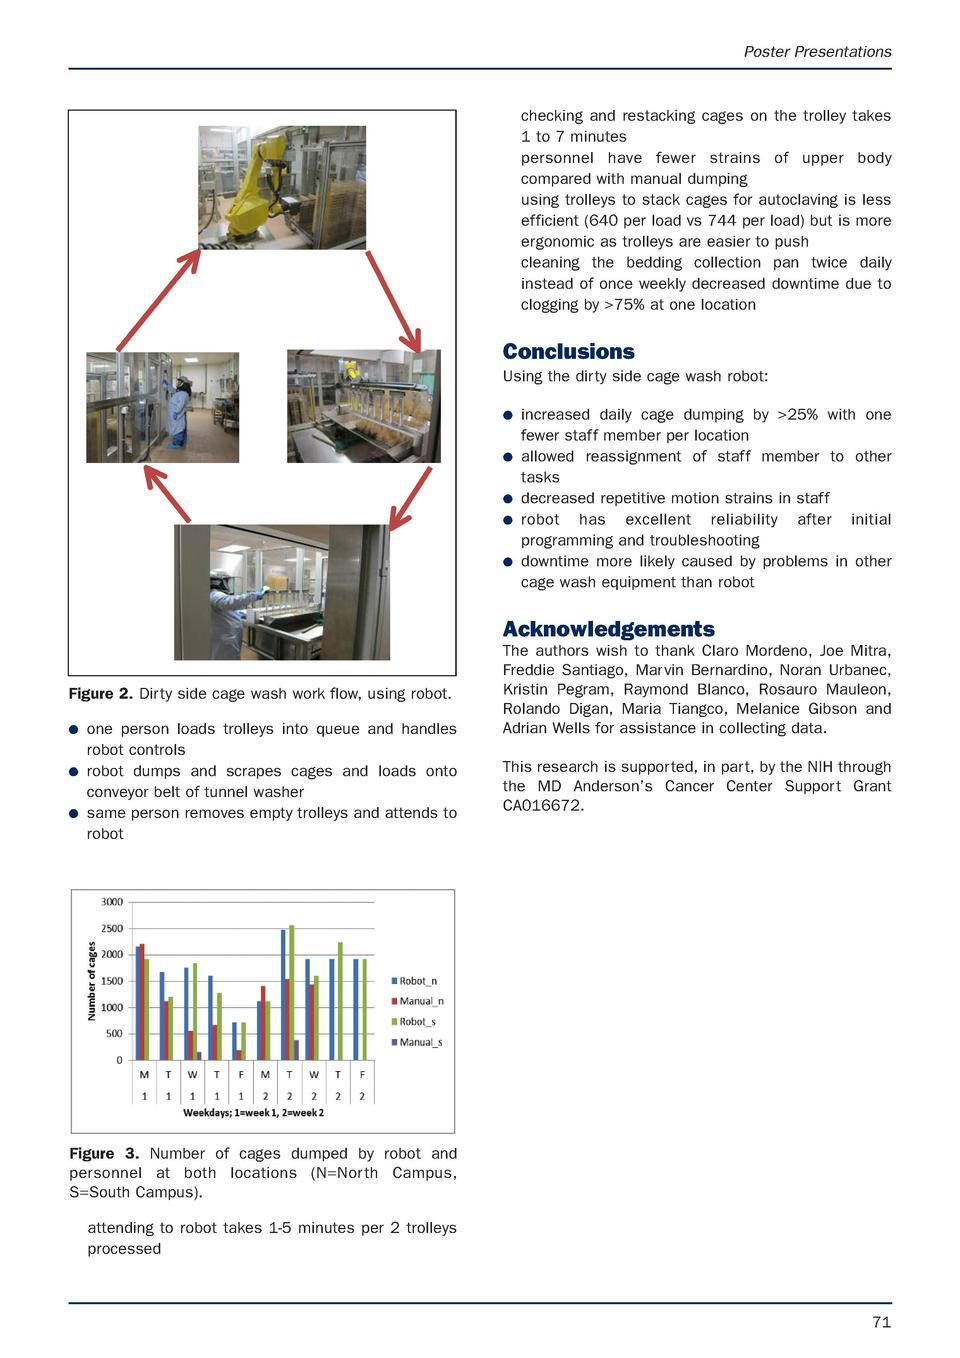 Poster Presentations  checking and restacking cages on the trolley takes 1 to 7 minutes personnel have fewer strains of up...